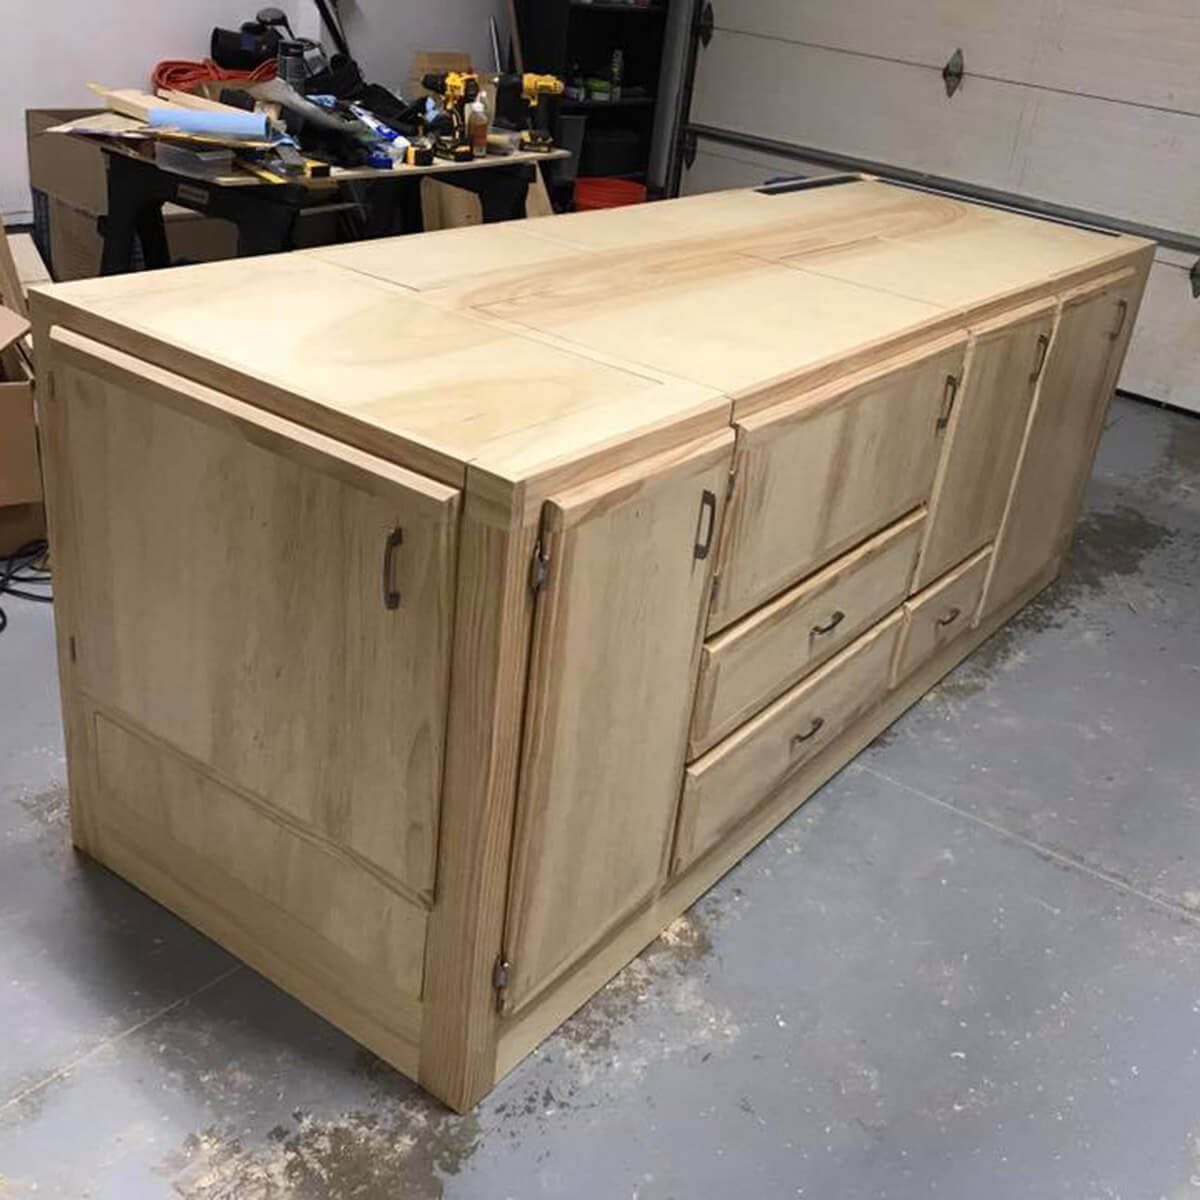 workbench with tools flipped into storage cabinets